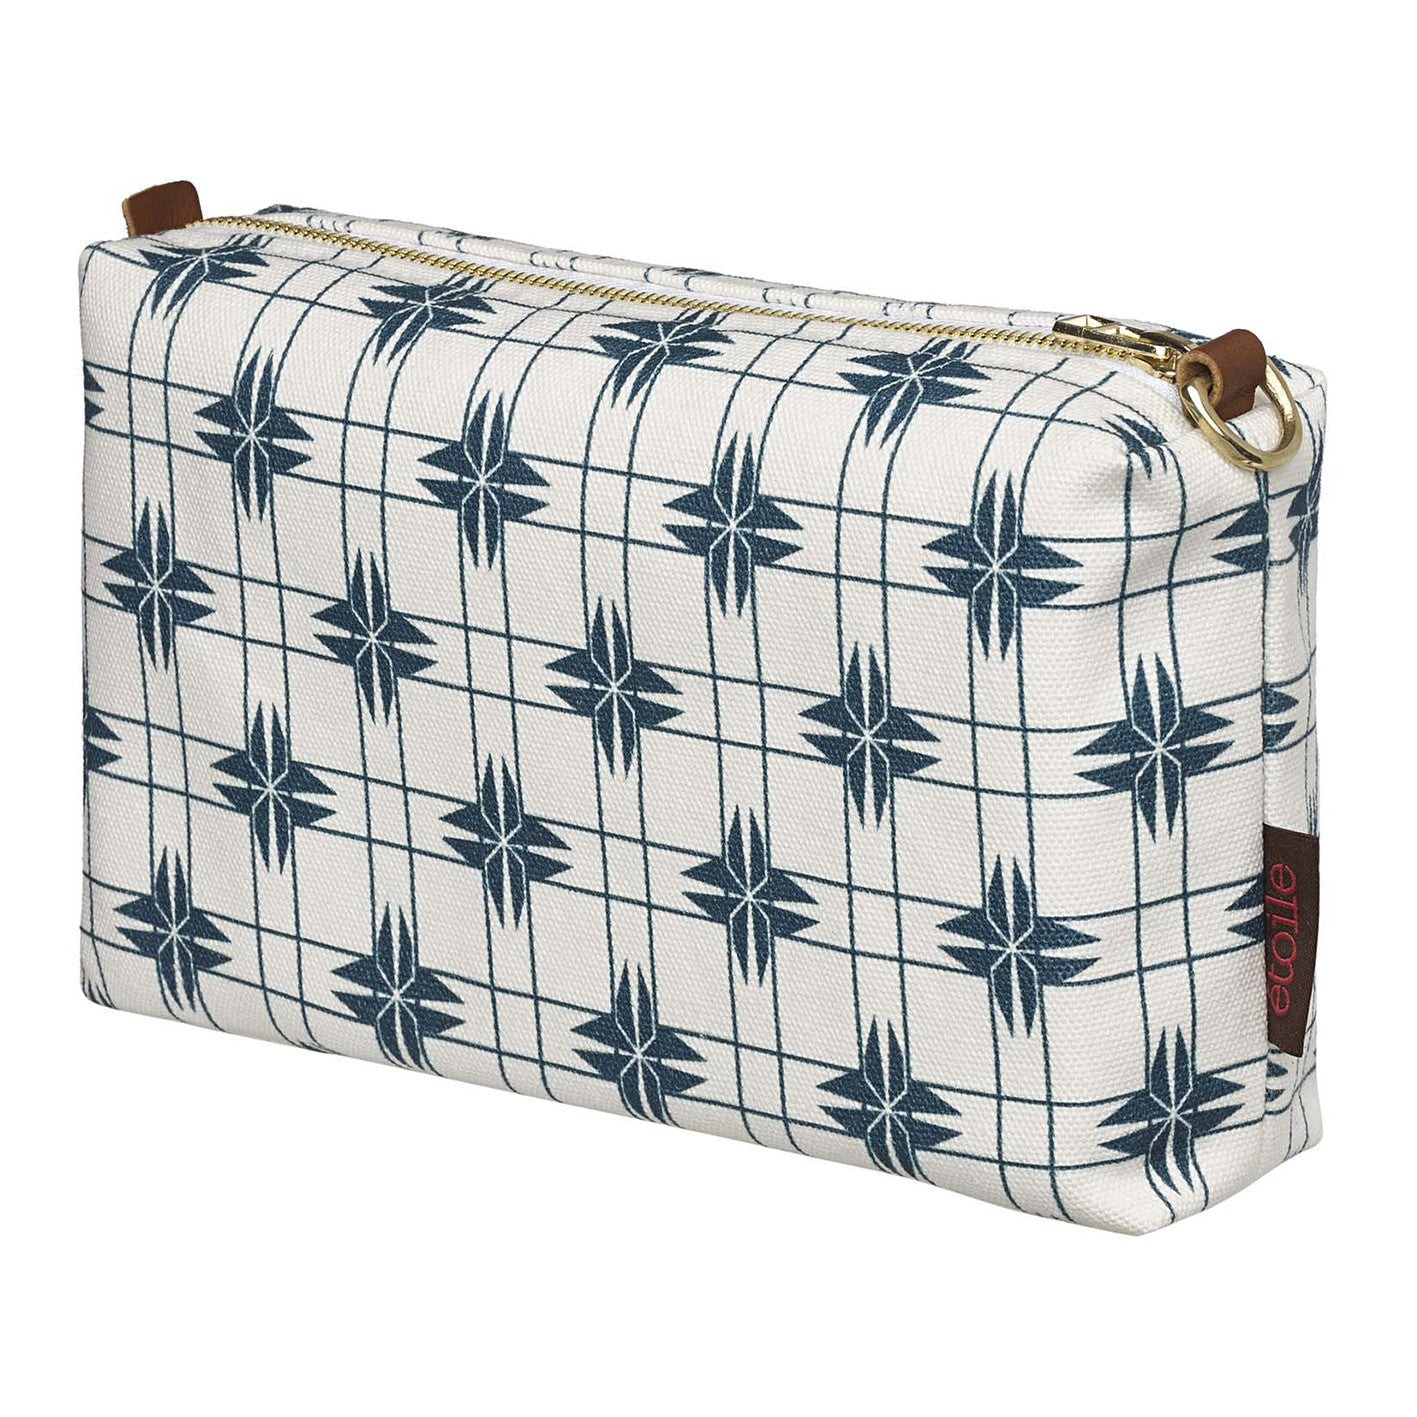 Pueblo Geometric Pattern Canvas Wash or toiletry travel Bag in Dark Petrol Blue Perfect for all your cosmetic and beauty needs while travelling Ships from Canada (USA)